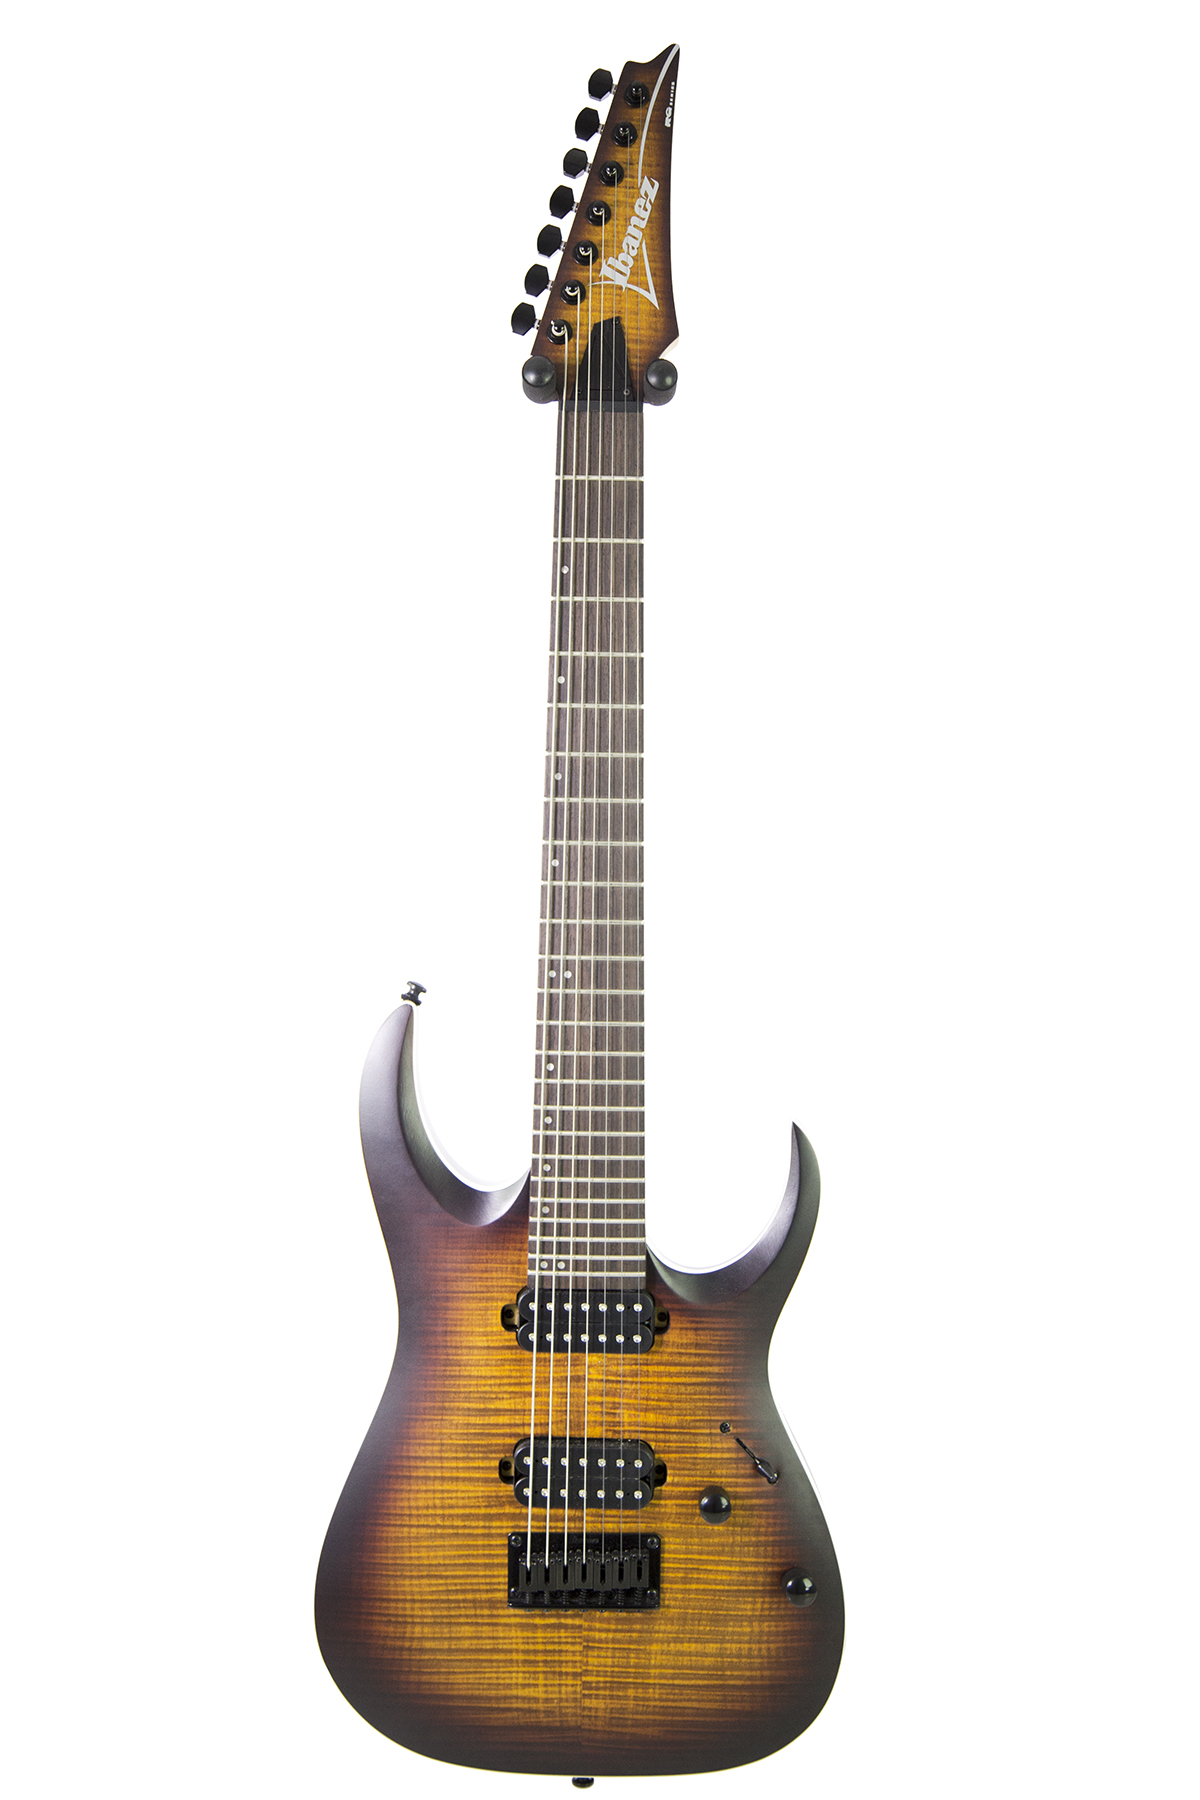 brand new ibanez rga series rga742fm dragon eye burst electric guitar new york music emporium. Black Bedroom Furniture Sets. Home Design Ideas